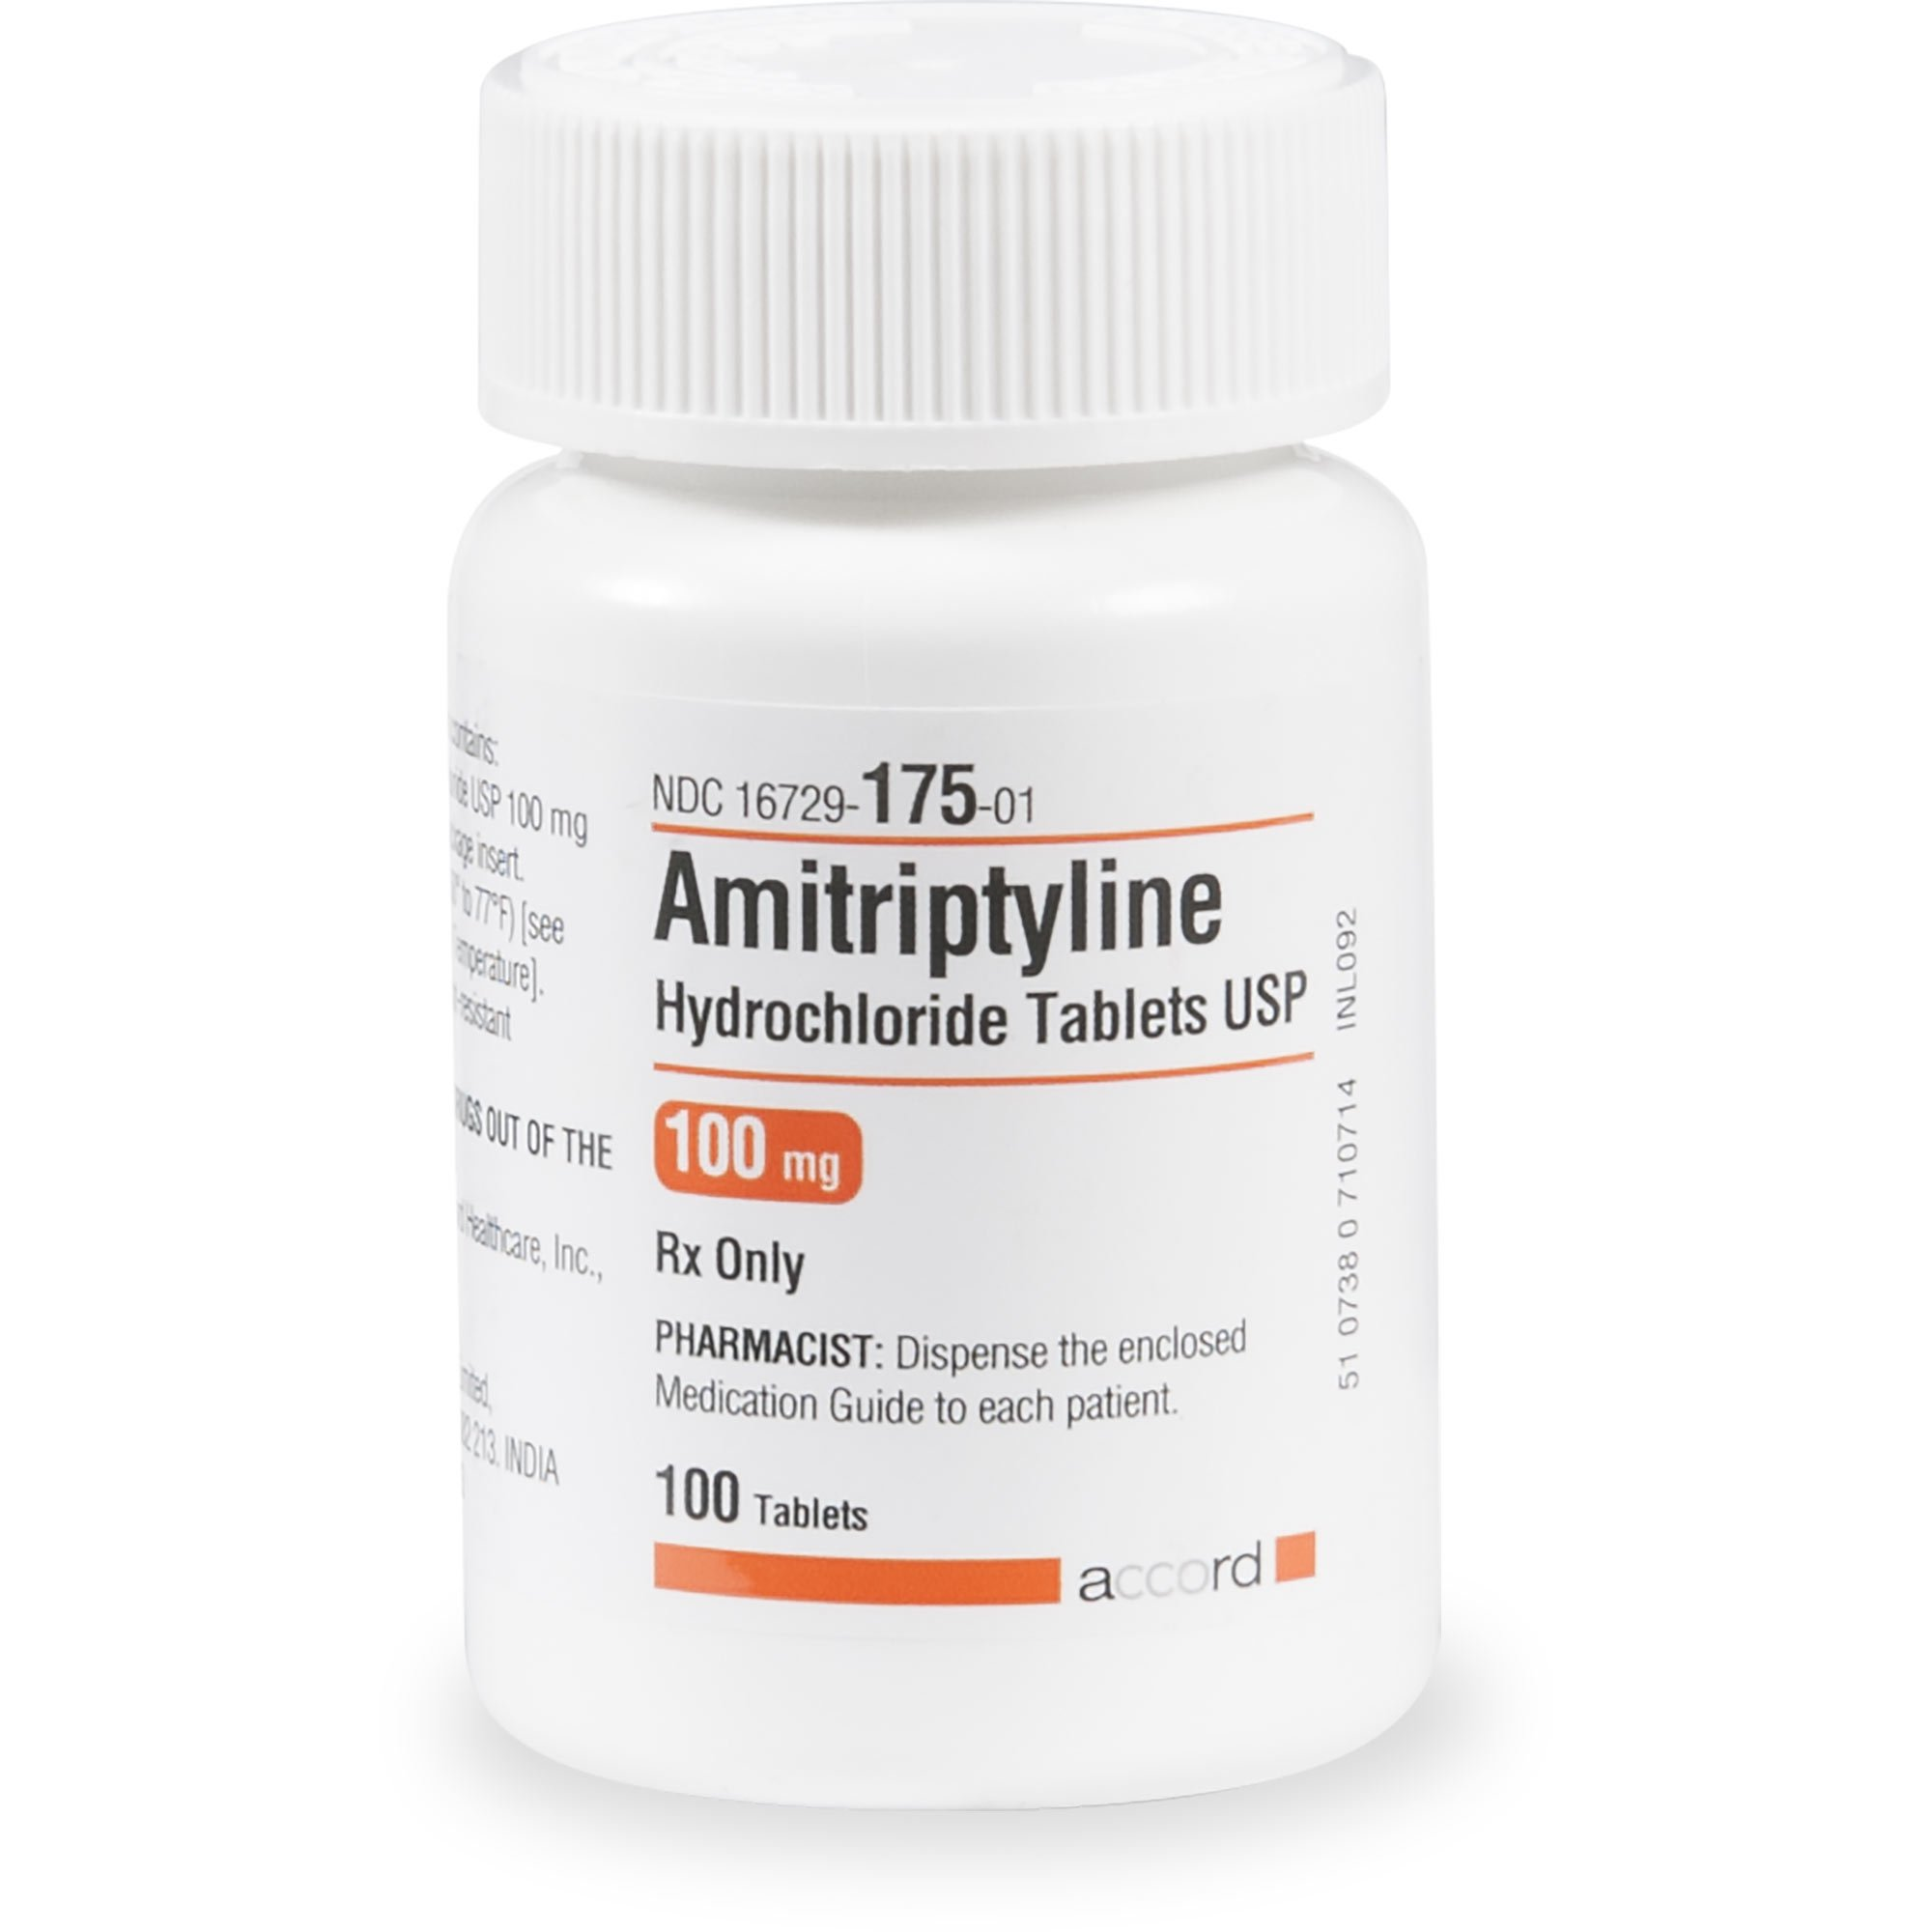 The drug is Amitripylin contraindicated for breastfeeding